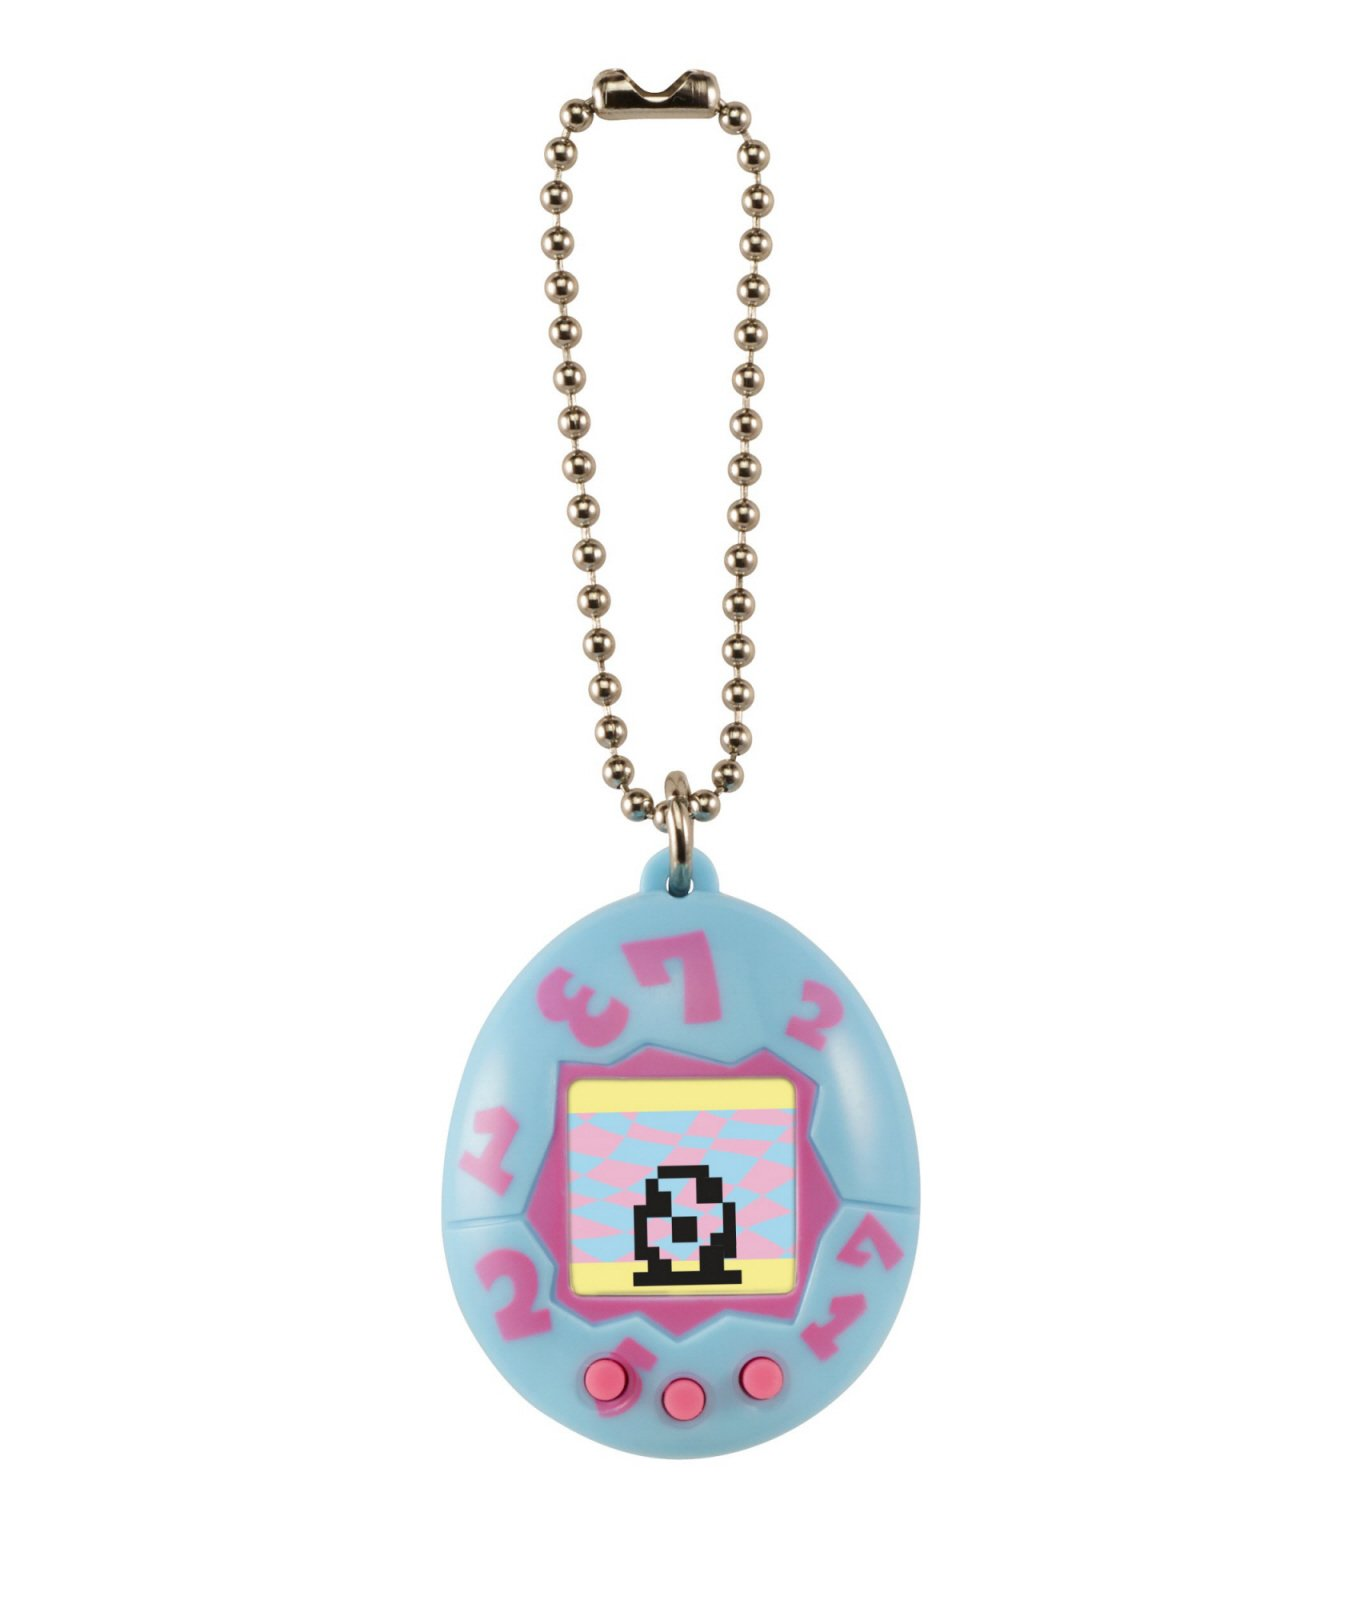 Buy Tamagotchi Chain Toy Now!